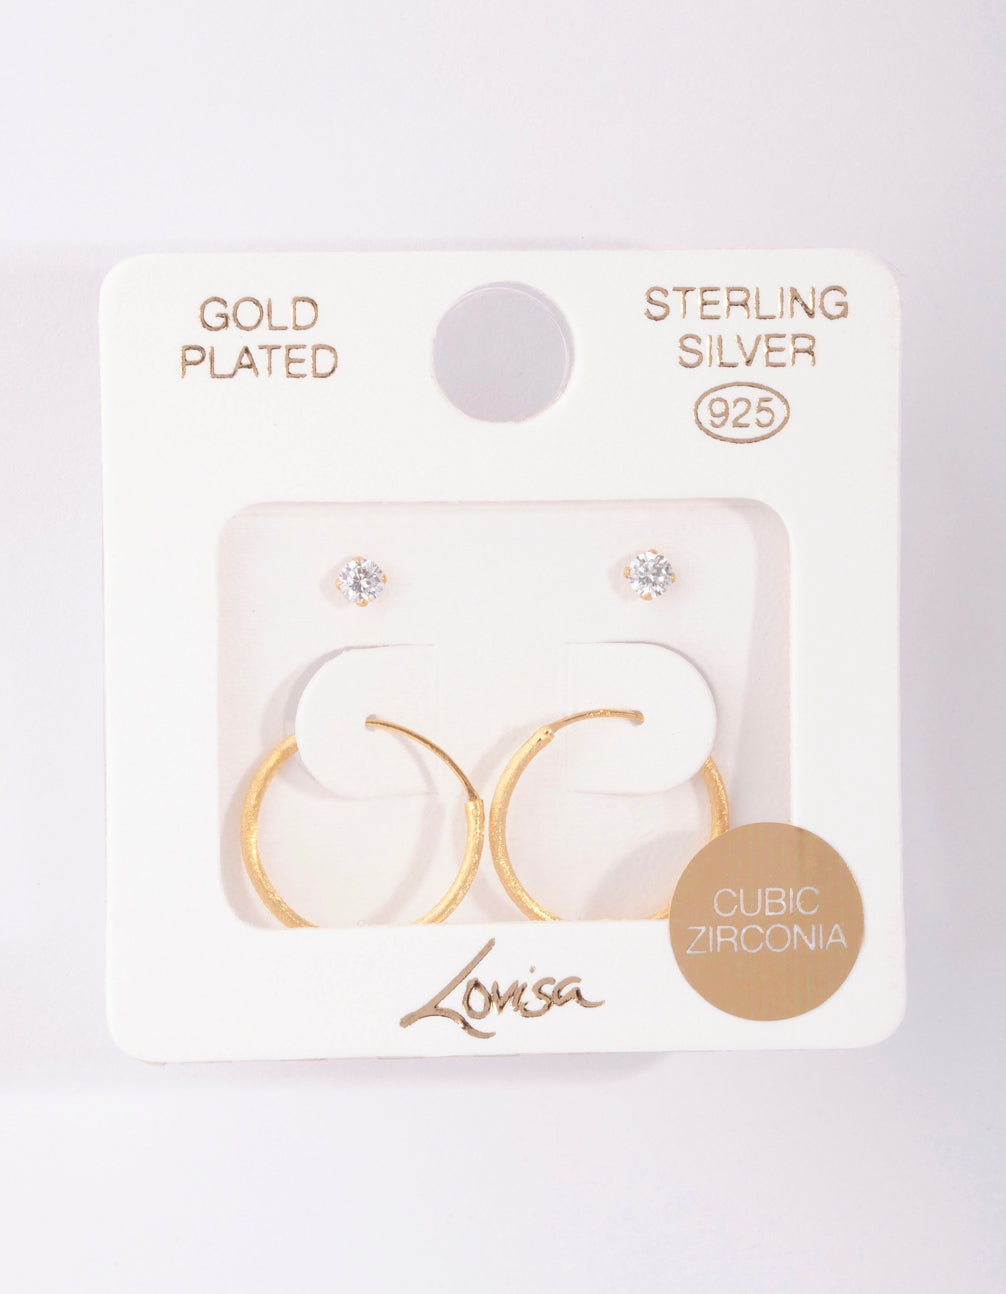 Gold Plated Sterling Silver Stud Hoop Earring Pack